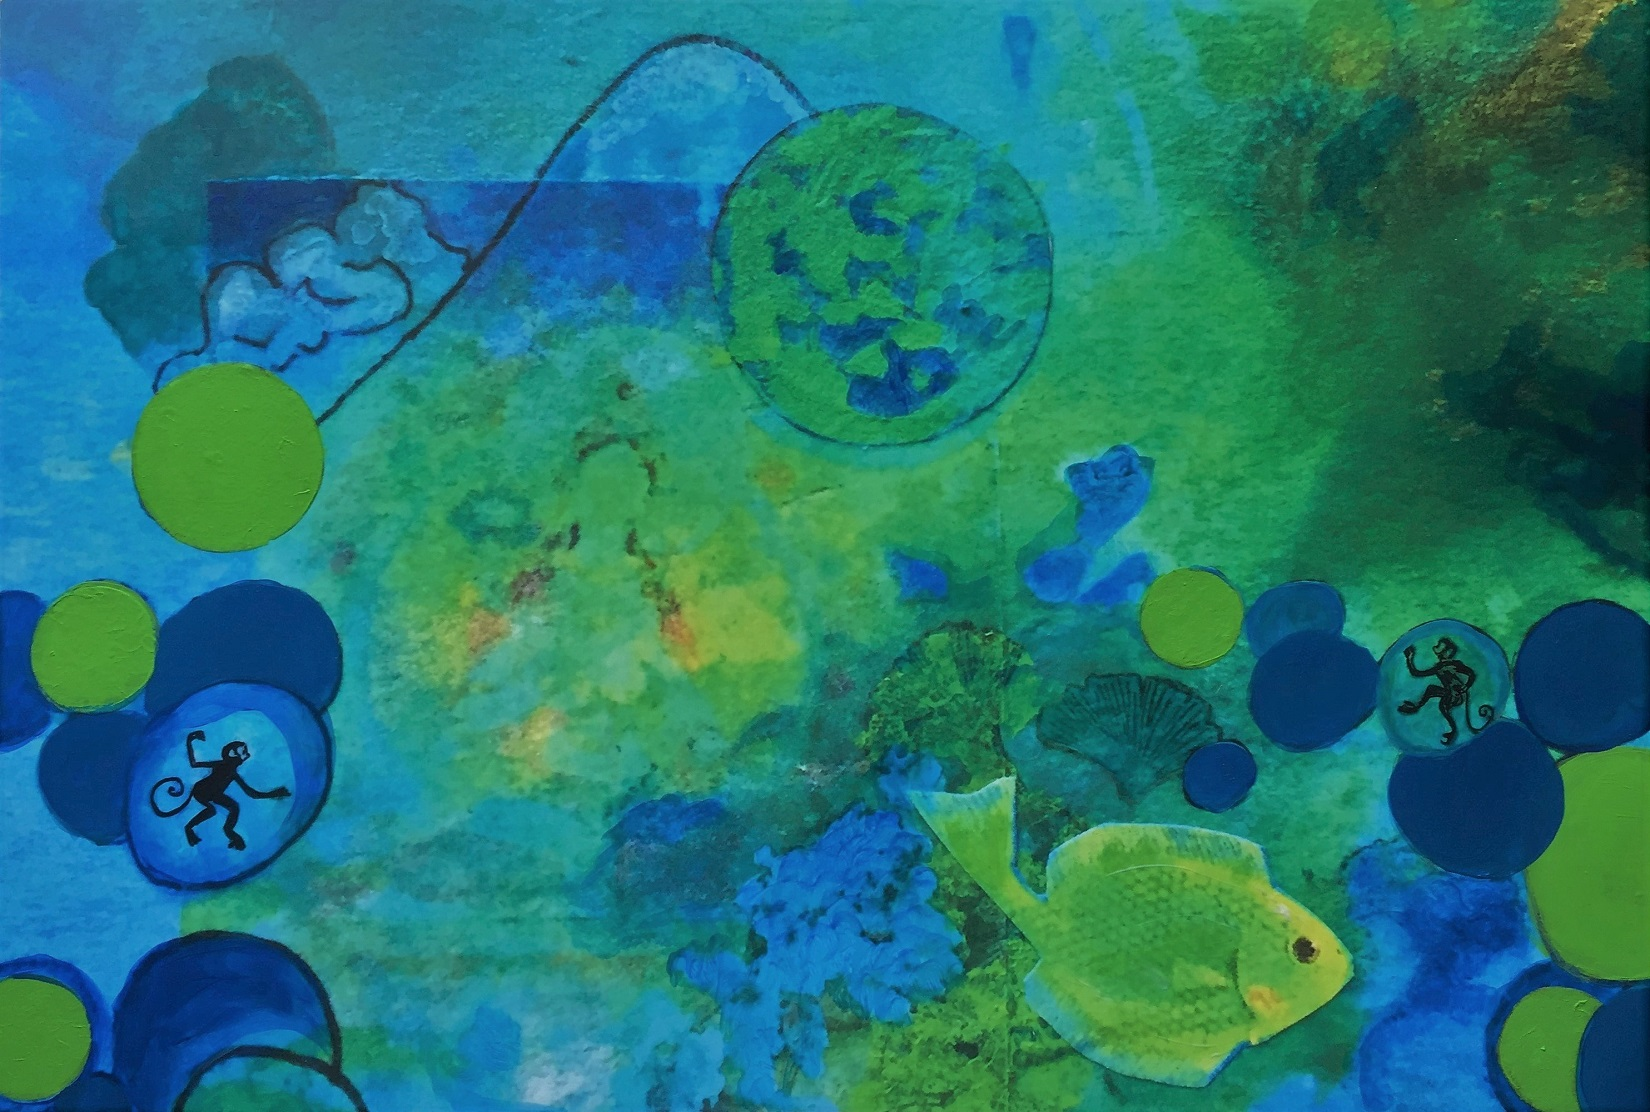 Blue Green Meditation Mixed Media on Aluminum